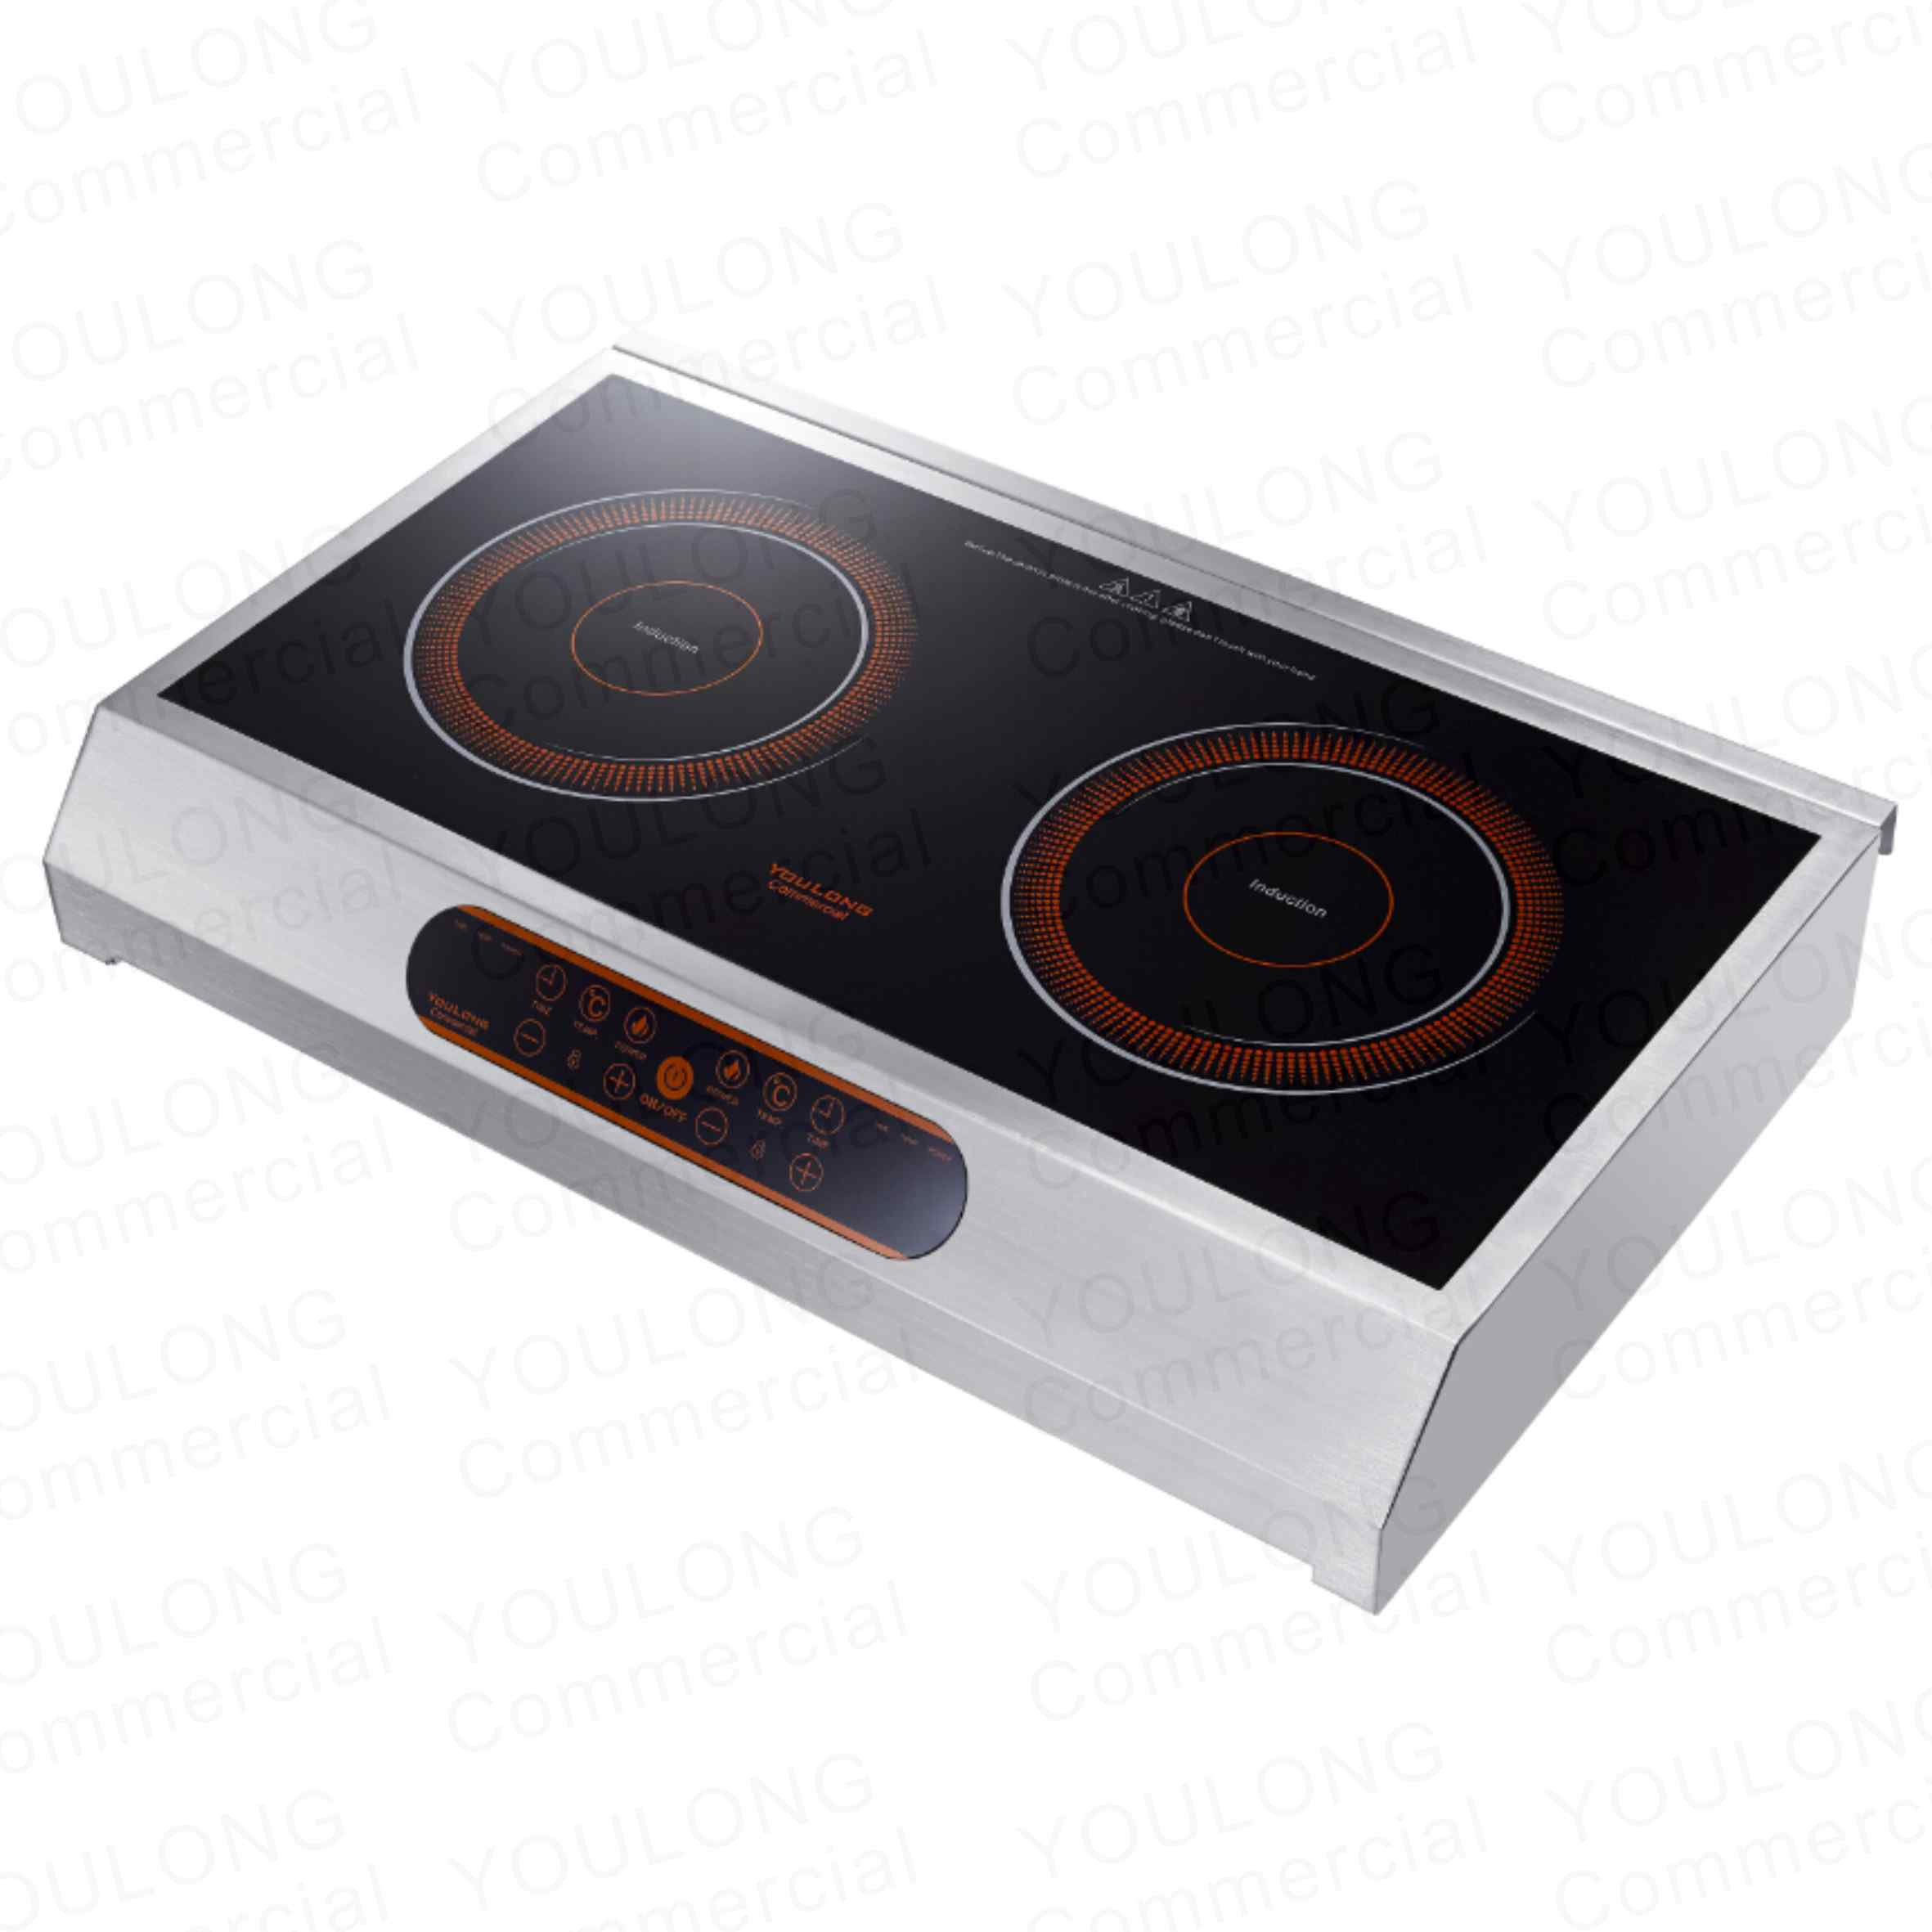 induction cooker(2 burner)C7001-S Touch Control